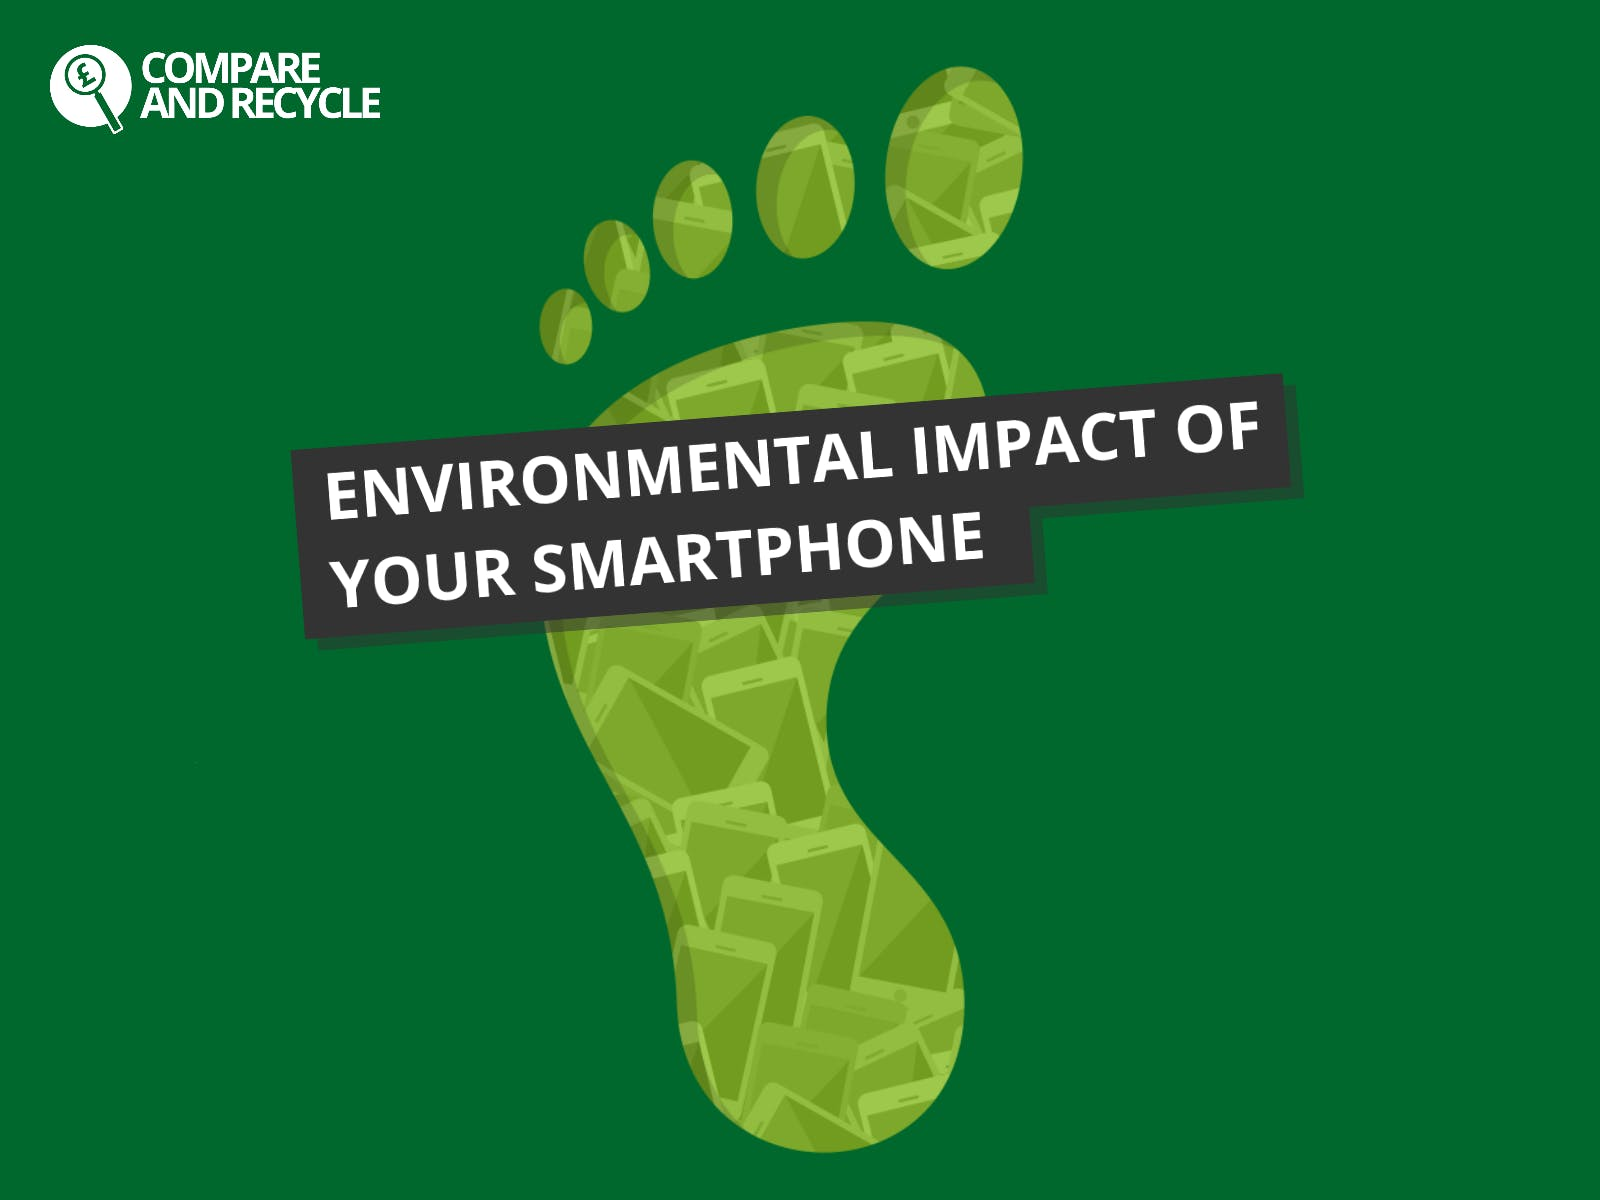 The Environmental Impact of Your Smartphone